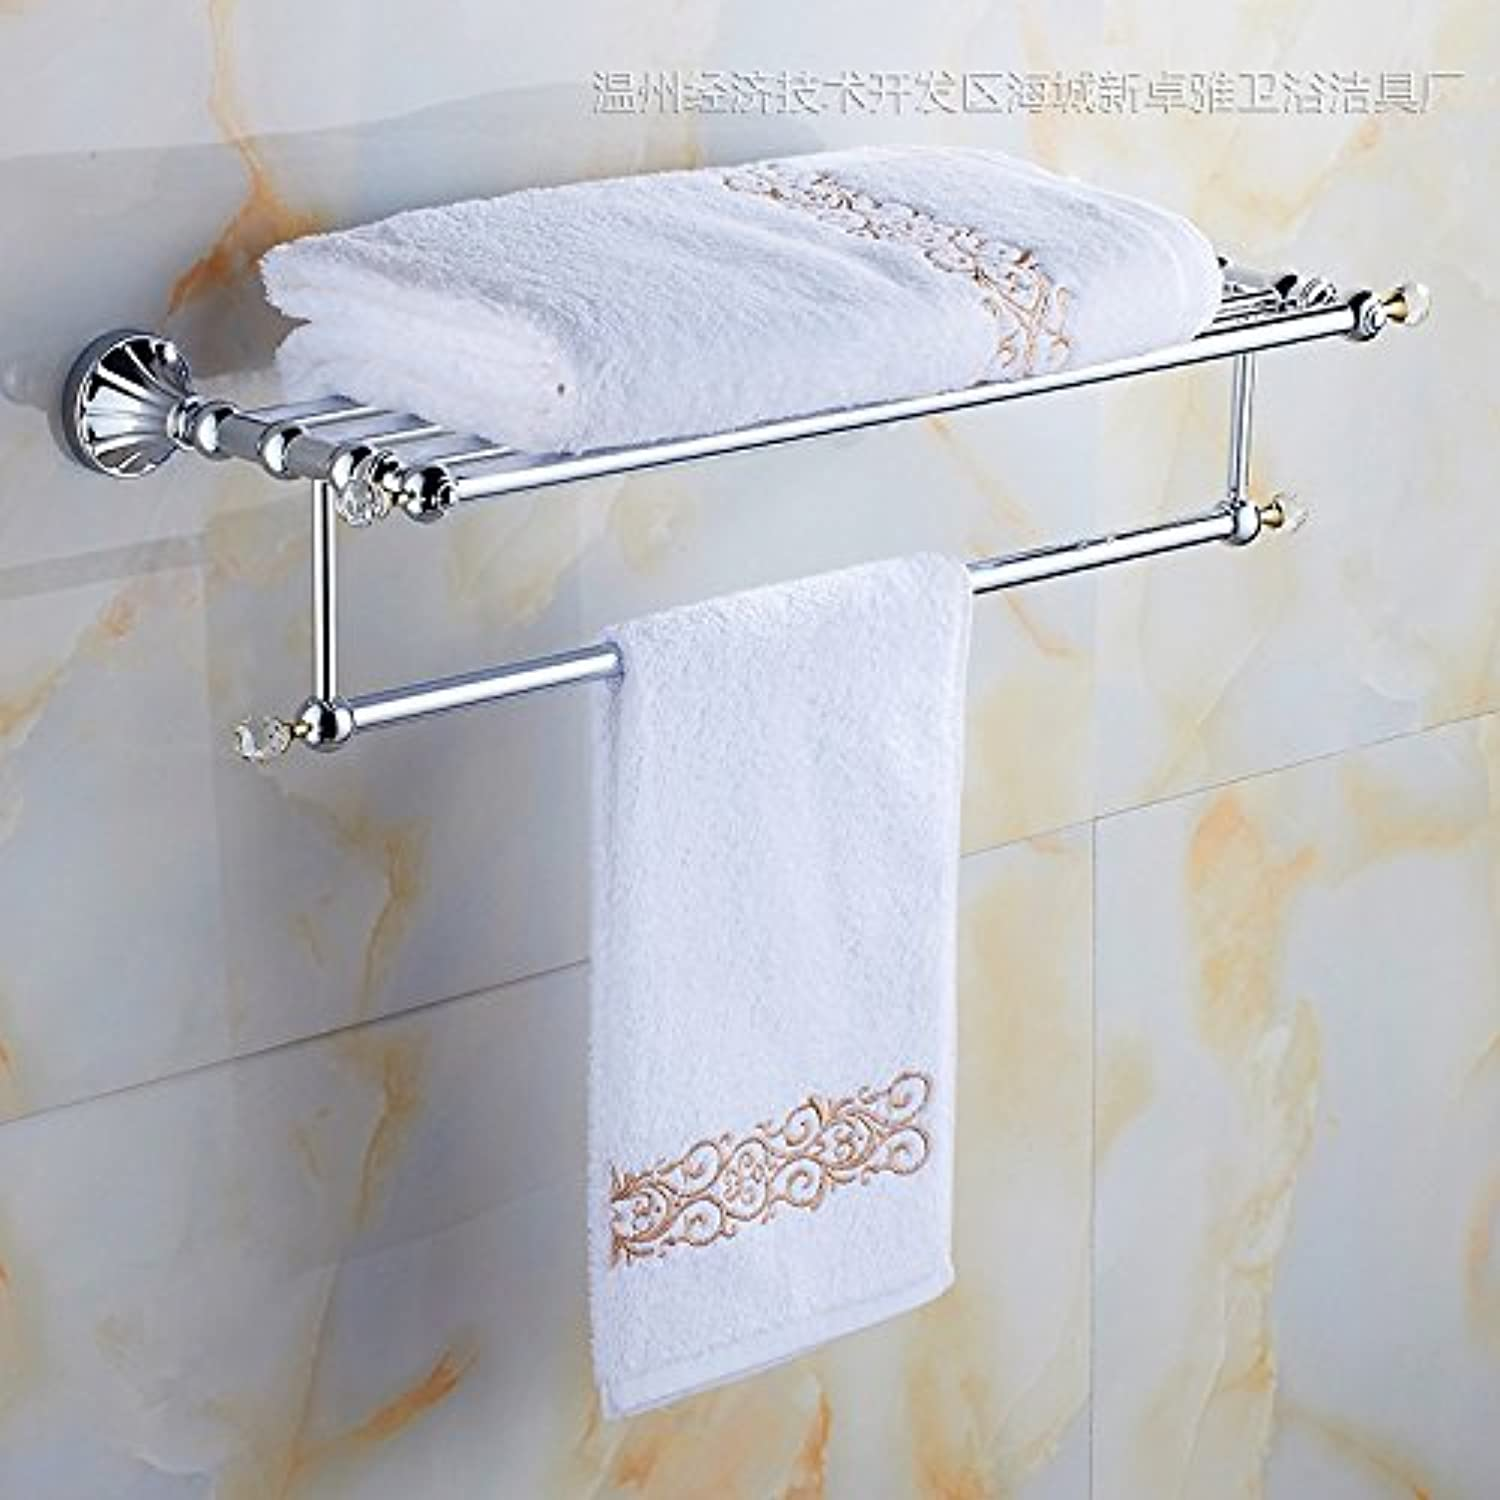 Bathroom stainless steel-studded double layer glass shelf-@wei